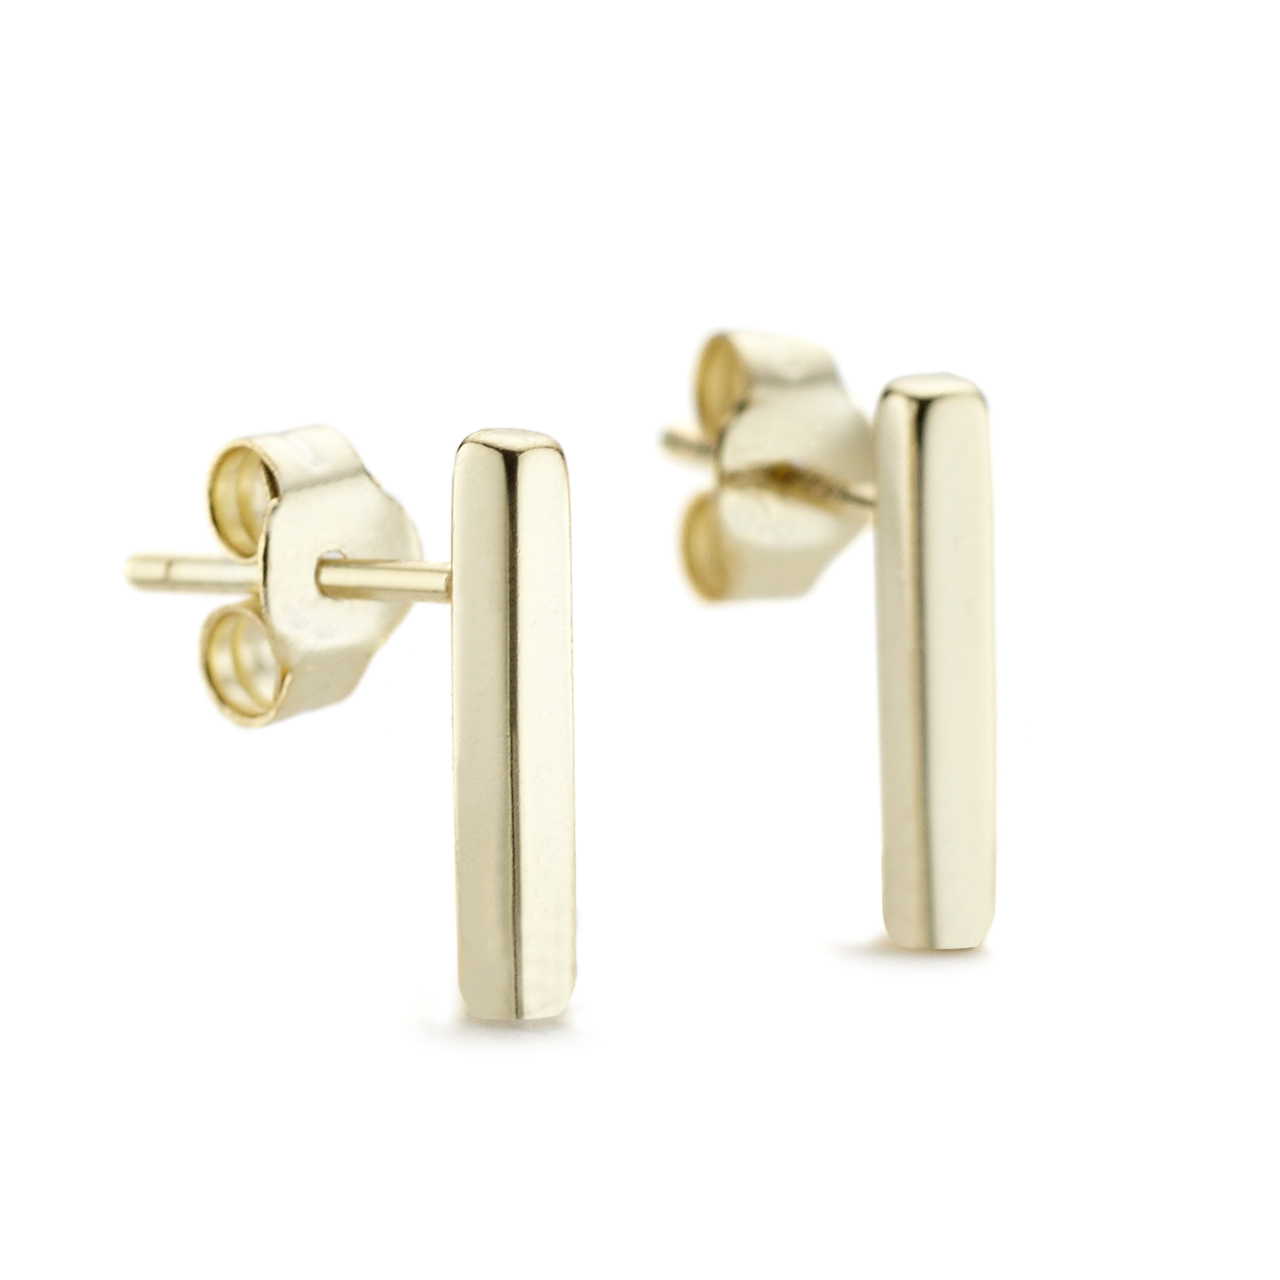 x small il susan sarantos newport products rose stud earrings bar high by minimalist fullxfull ri polish jewelry gold solid